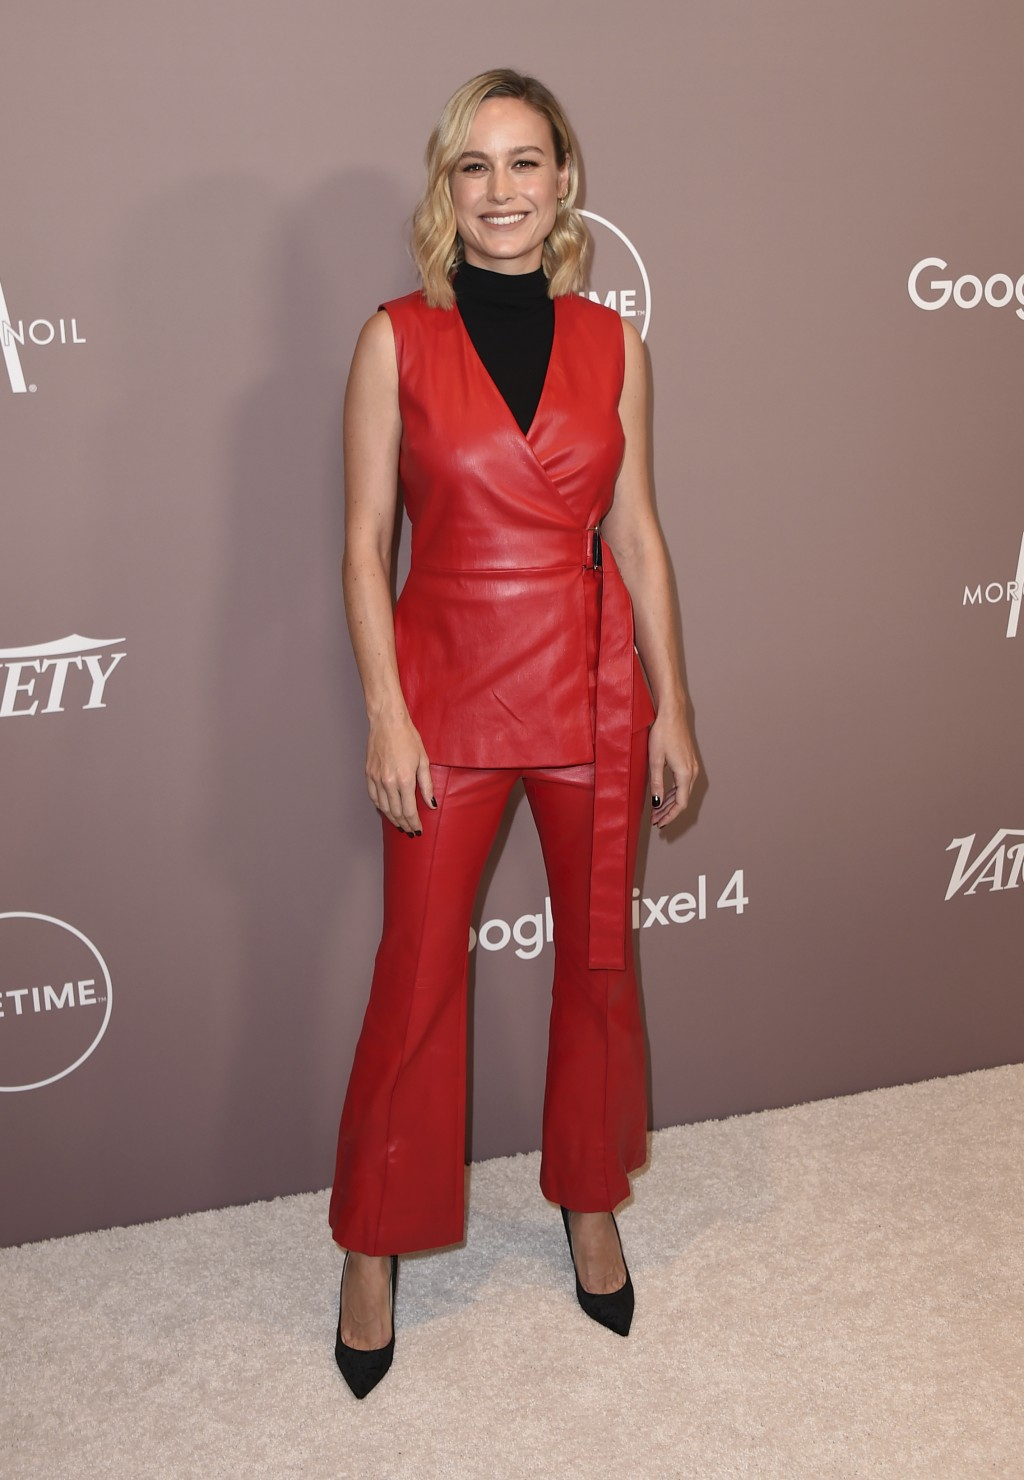 Brie Larson arrives at Variety's Power of Women on Friday, Oct. 11, 2019, at the Beverly Wilshire hotel in Beverly Hills, Calif. (Photo by Jordan Stra...